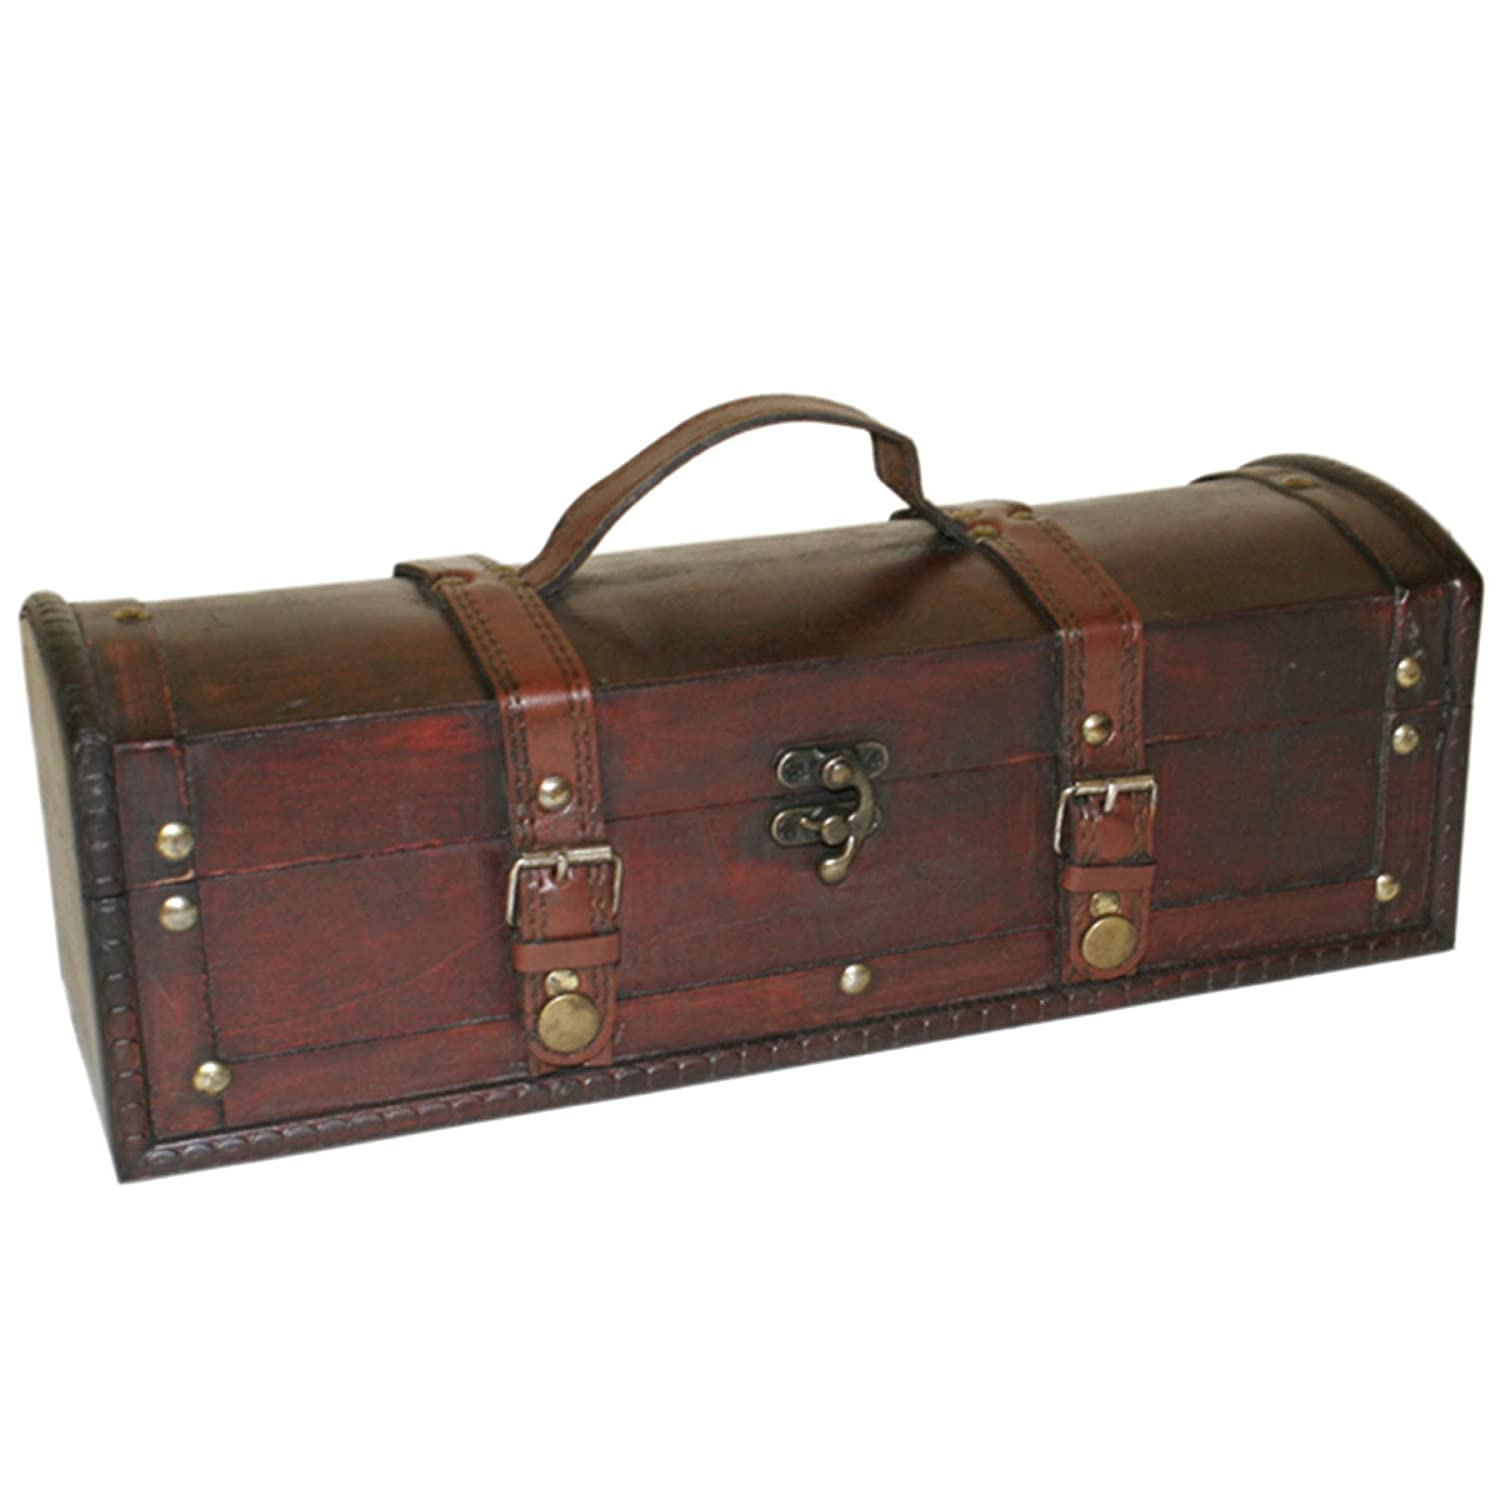 Rustic Hand Crafted Antique Look Wooden Long Pirate Treasure Chest Trinket/Storage Box with Handle. Approx Length 35cm by sd